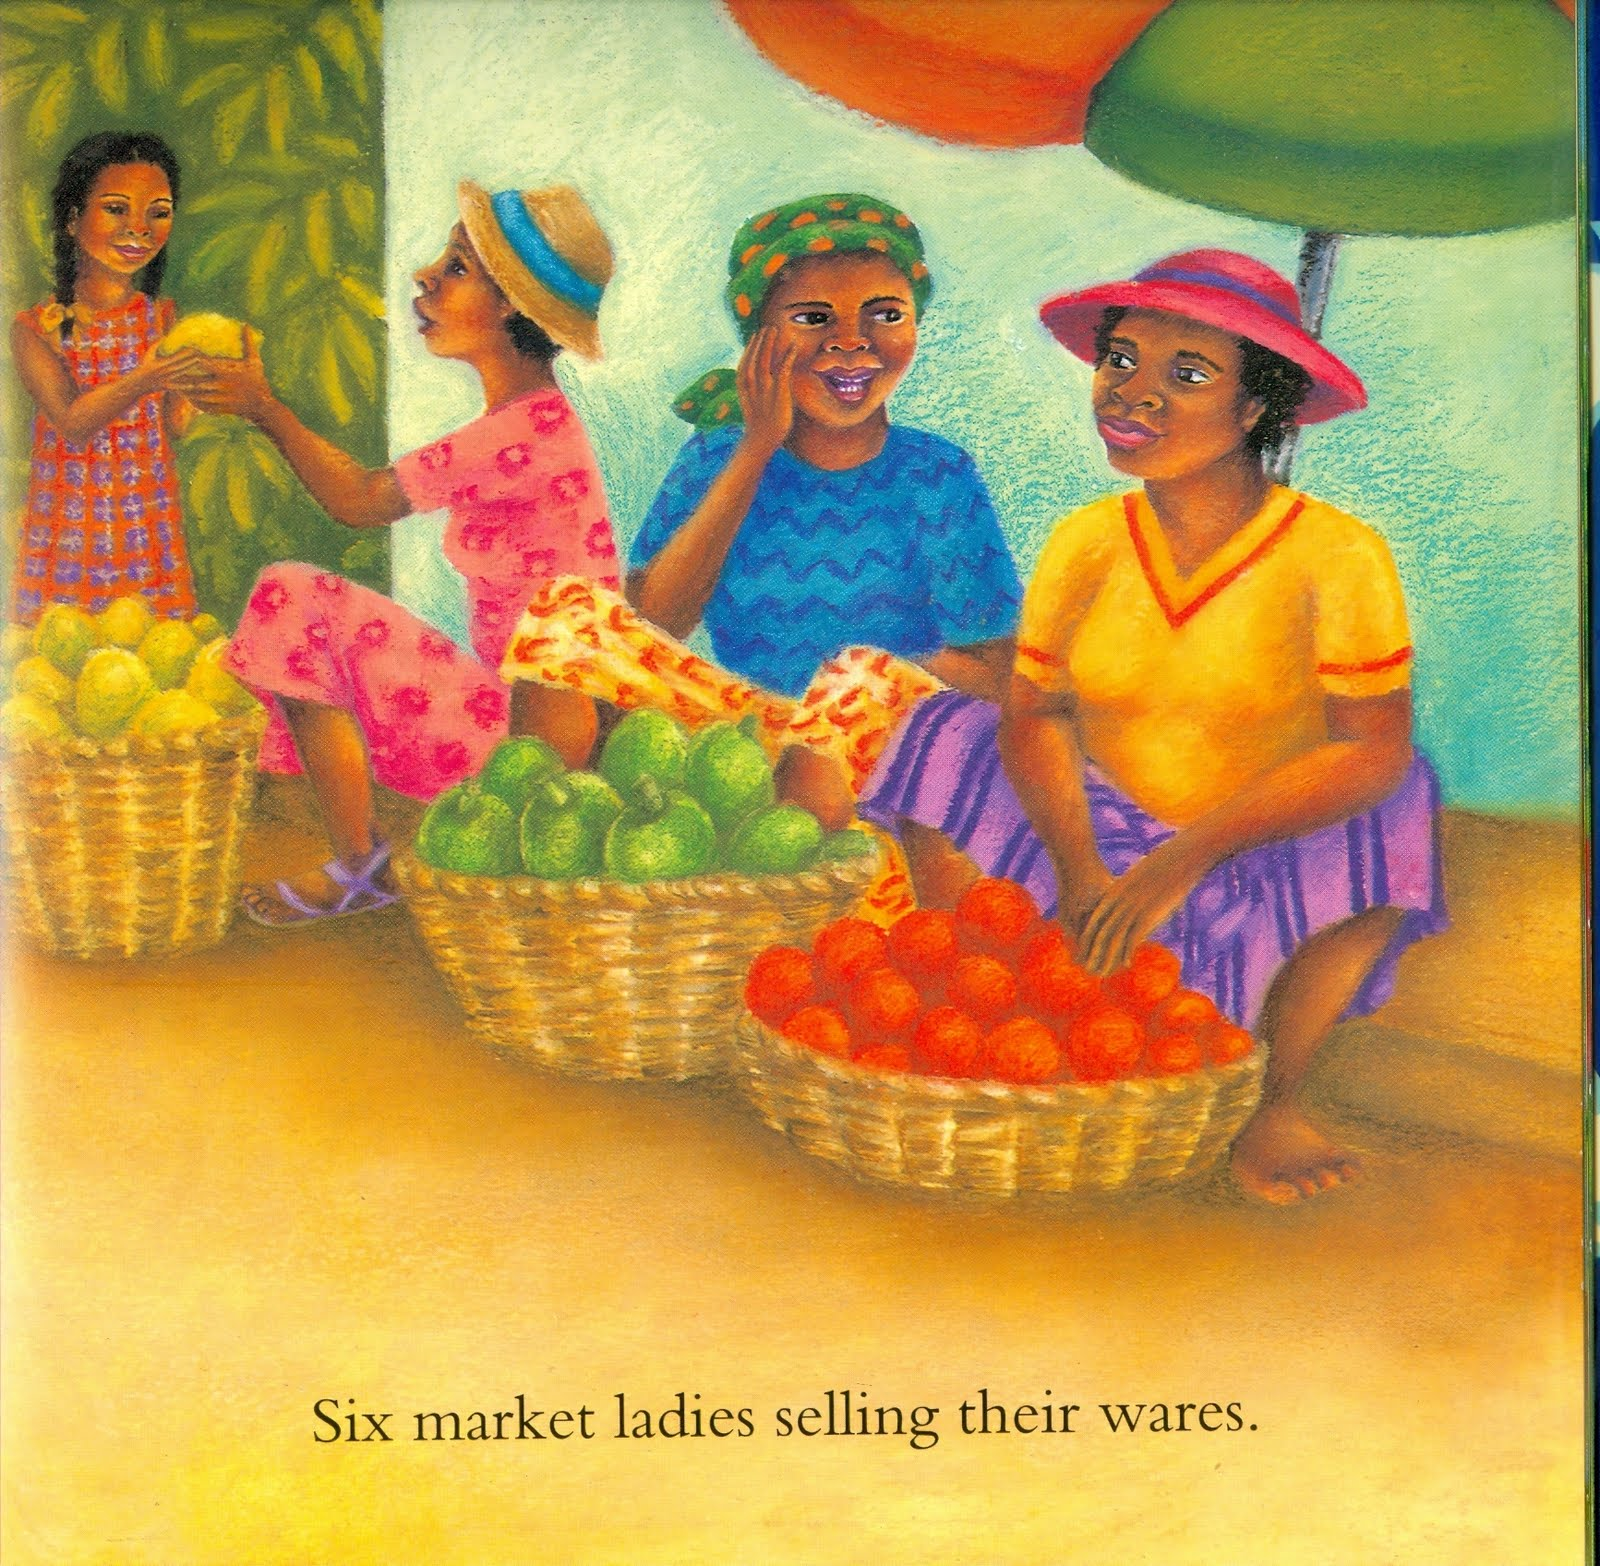 Colour childrens literature -  There Have Been Some Modern Ones In Two Or Three Colours The Caribbean Does Not Produce Many Books Which Fall Into This Category